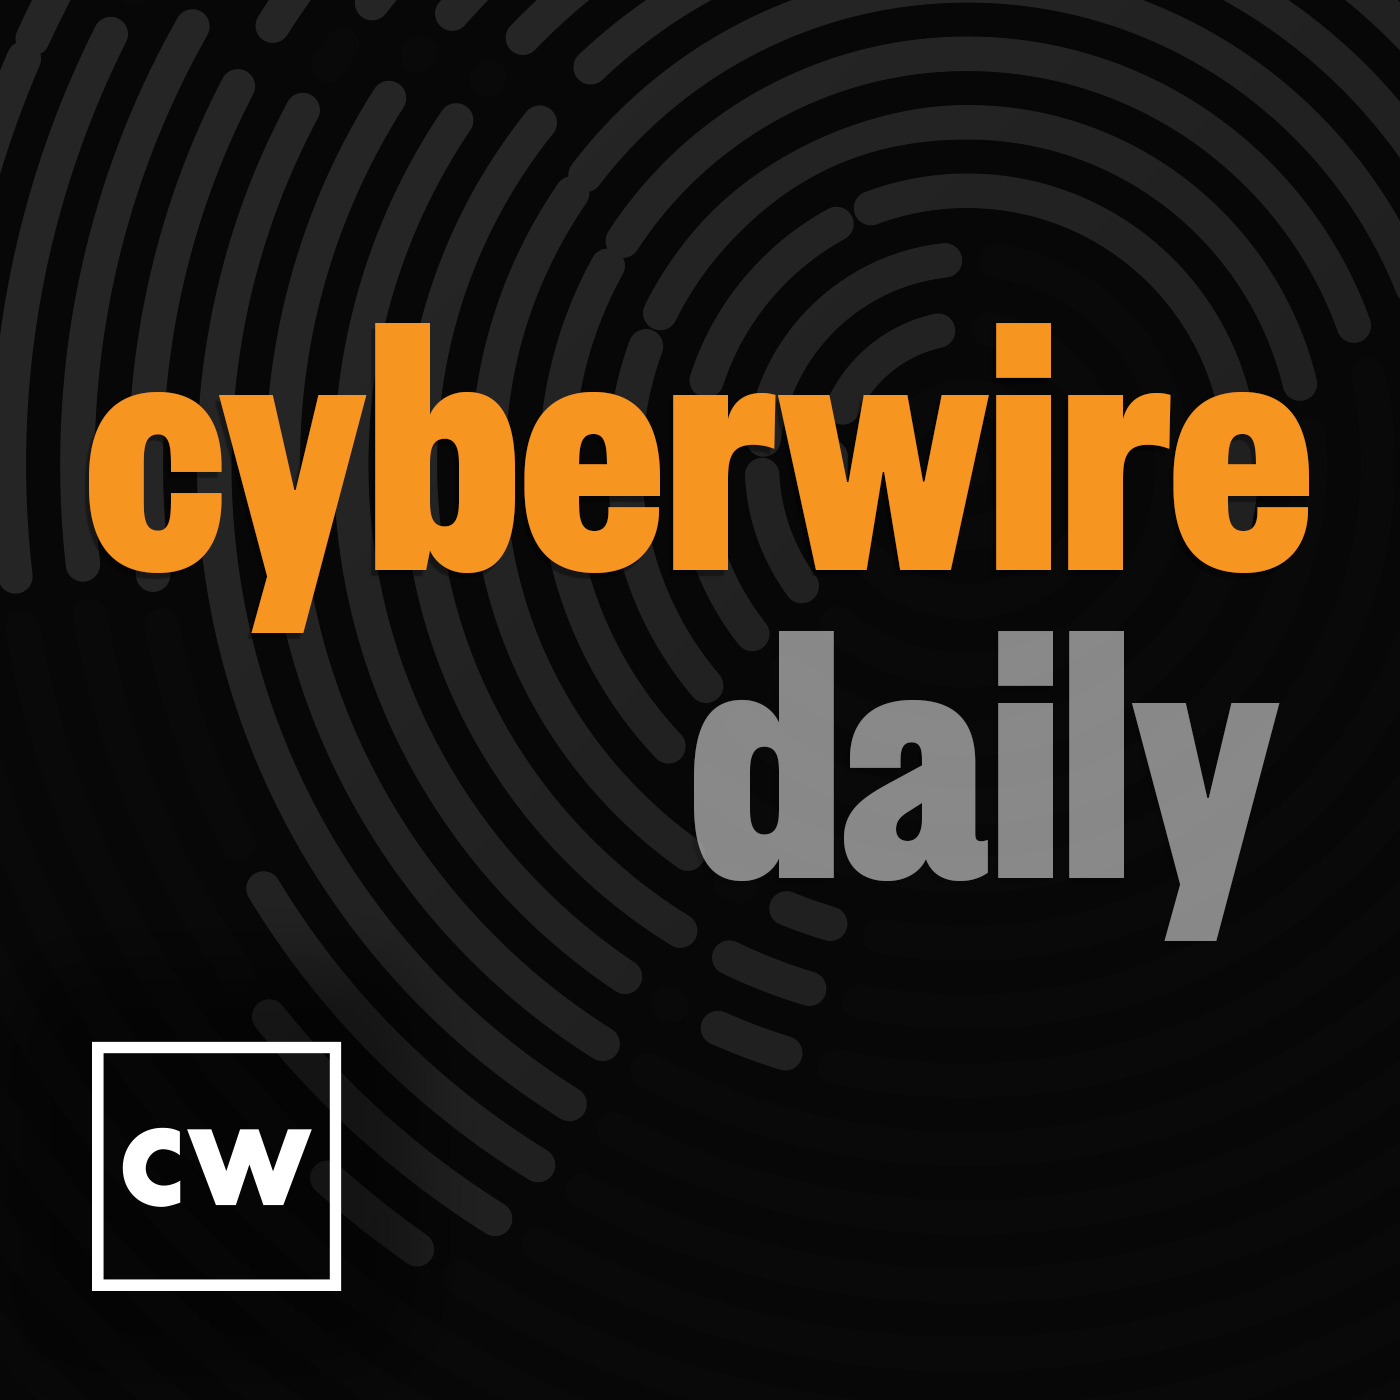 The CyberWire Daily show art